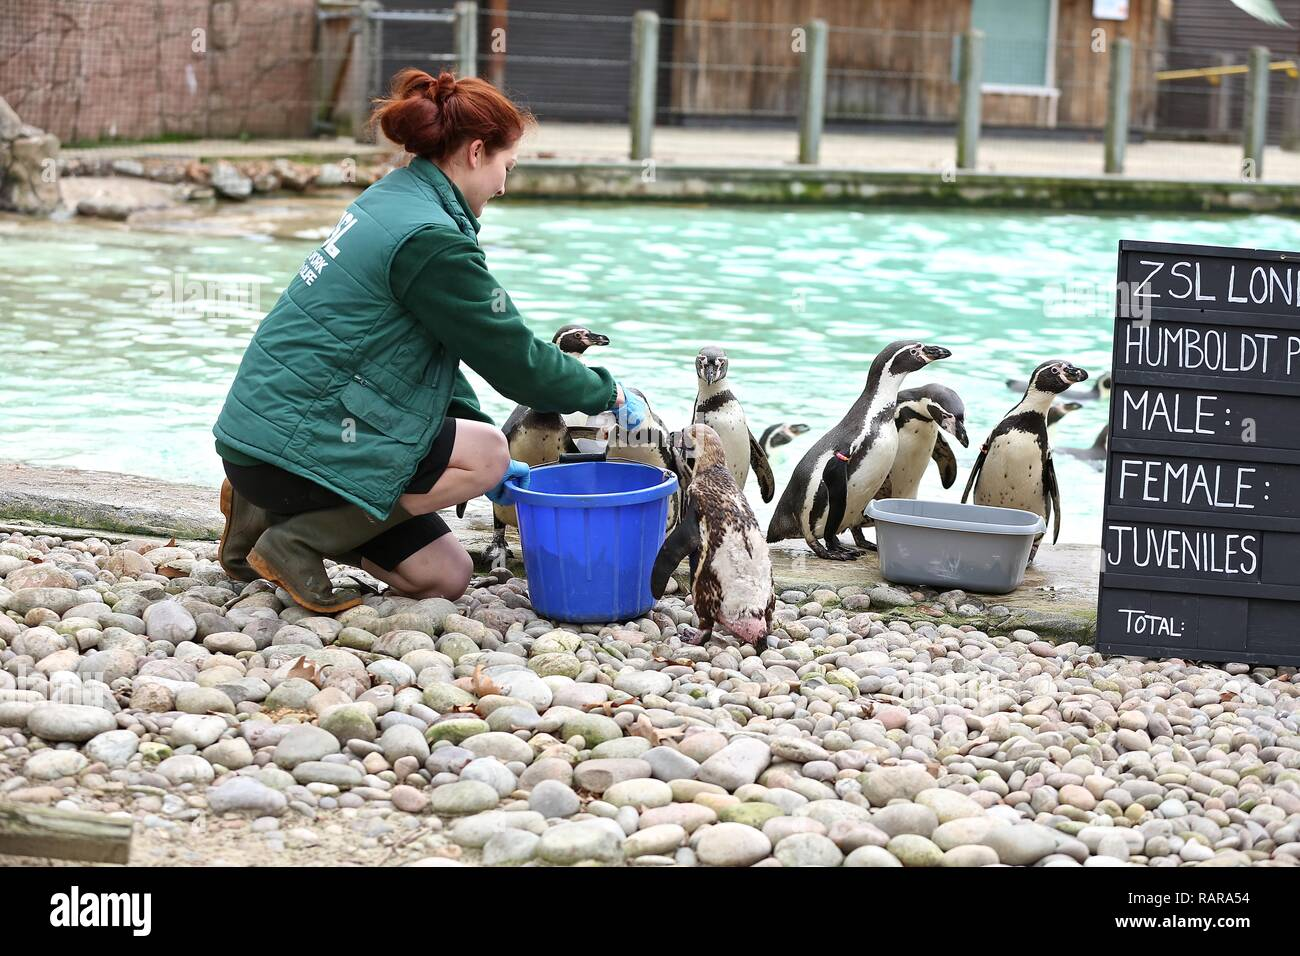 ZSL London Zoo's Annual Stocktake Thursday 3 January 2019 - Stock Image